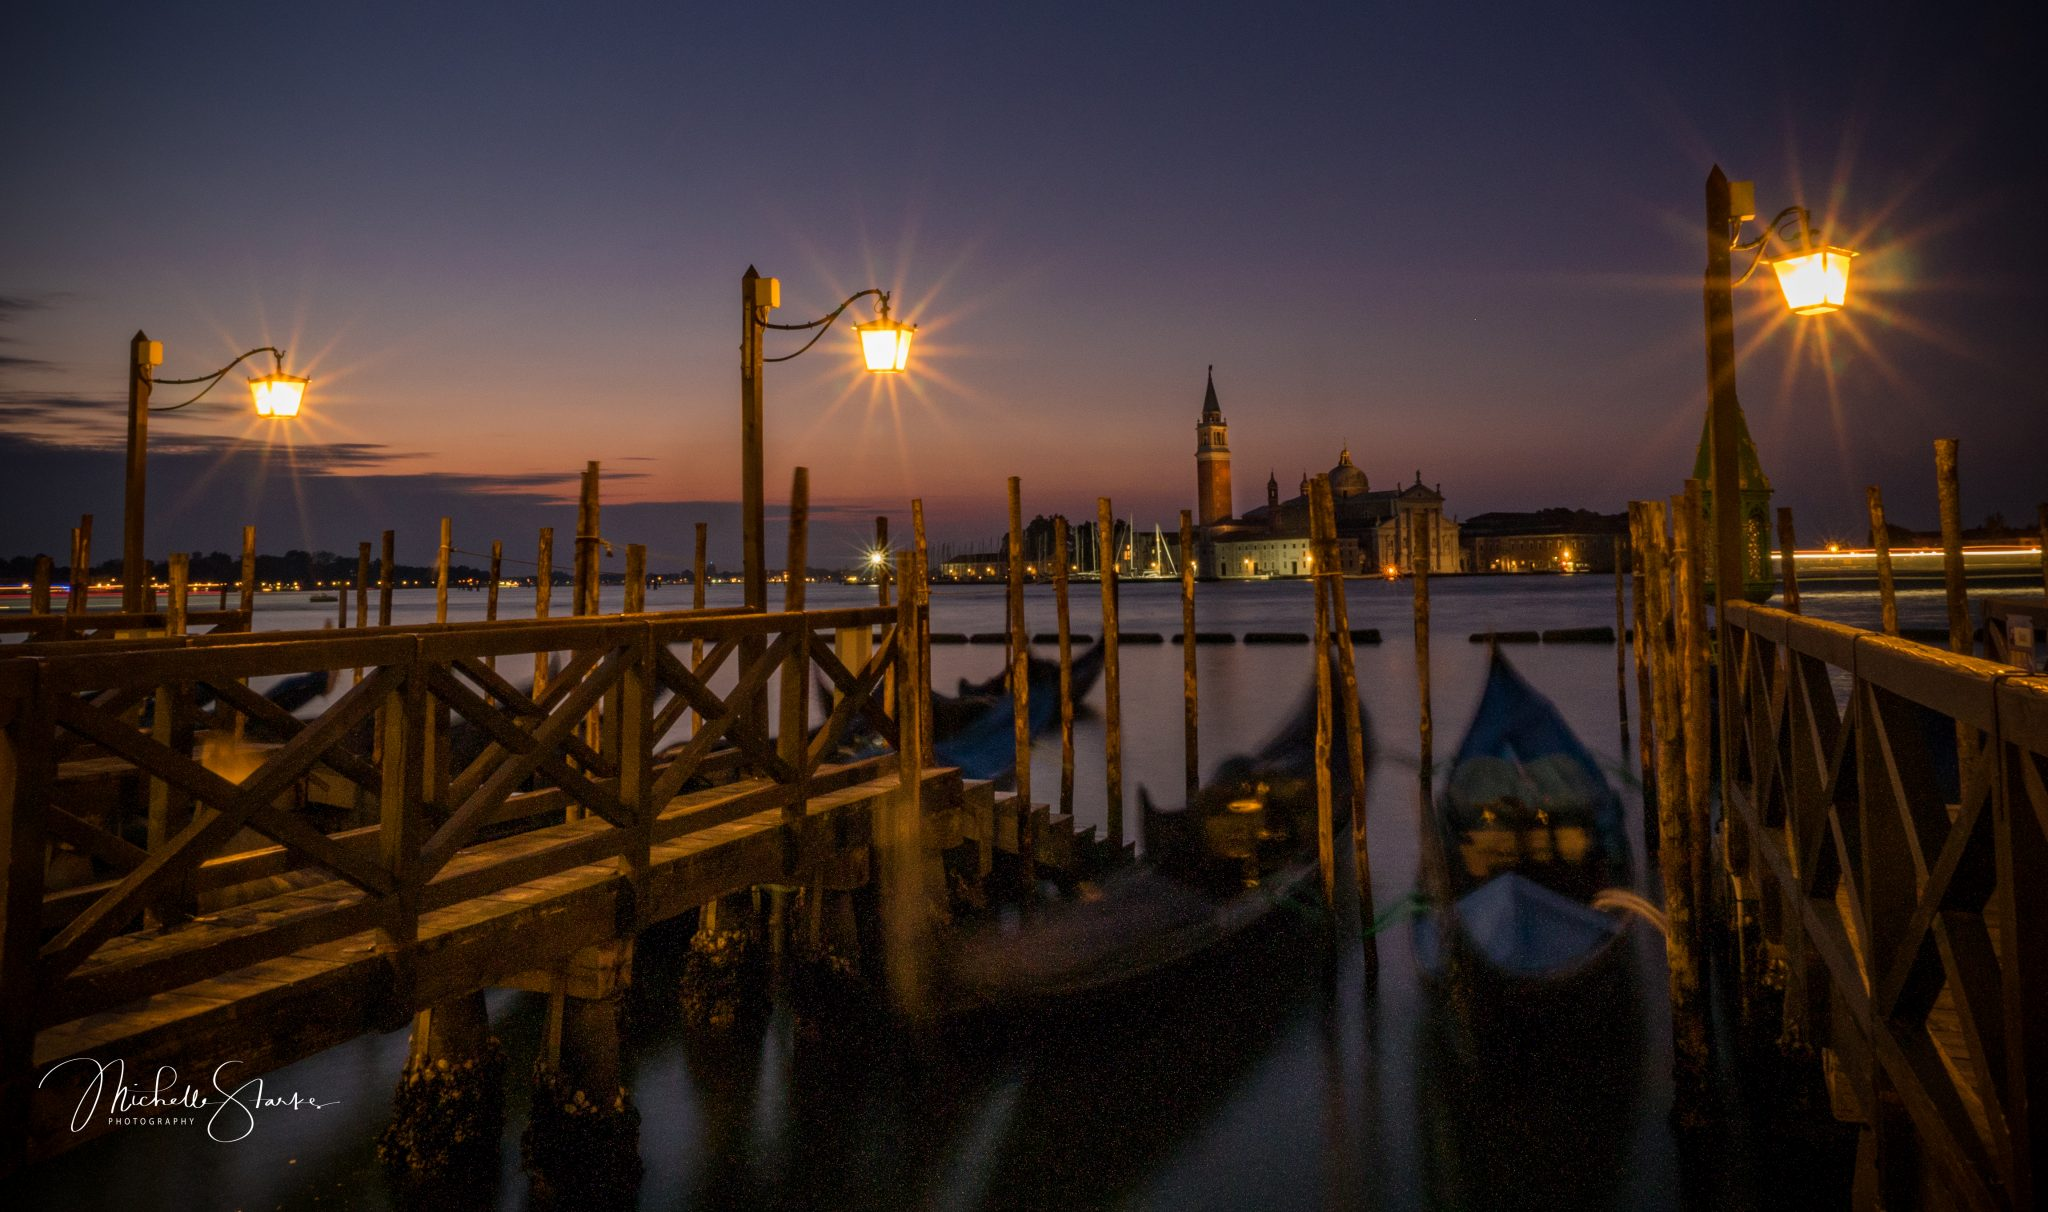 Gondolas in front of the Church of San Giorgio Maggiore, Venice, Italy